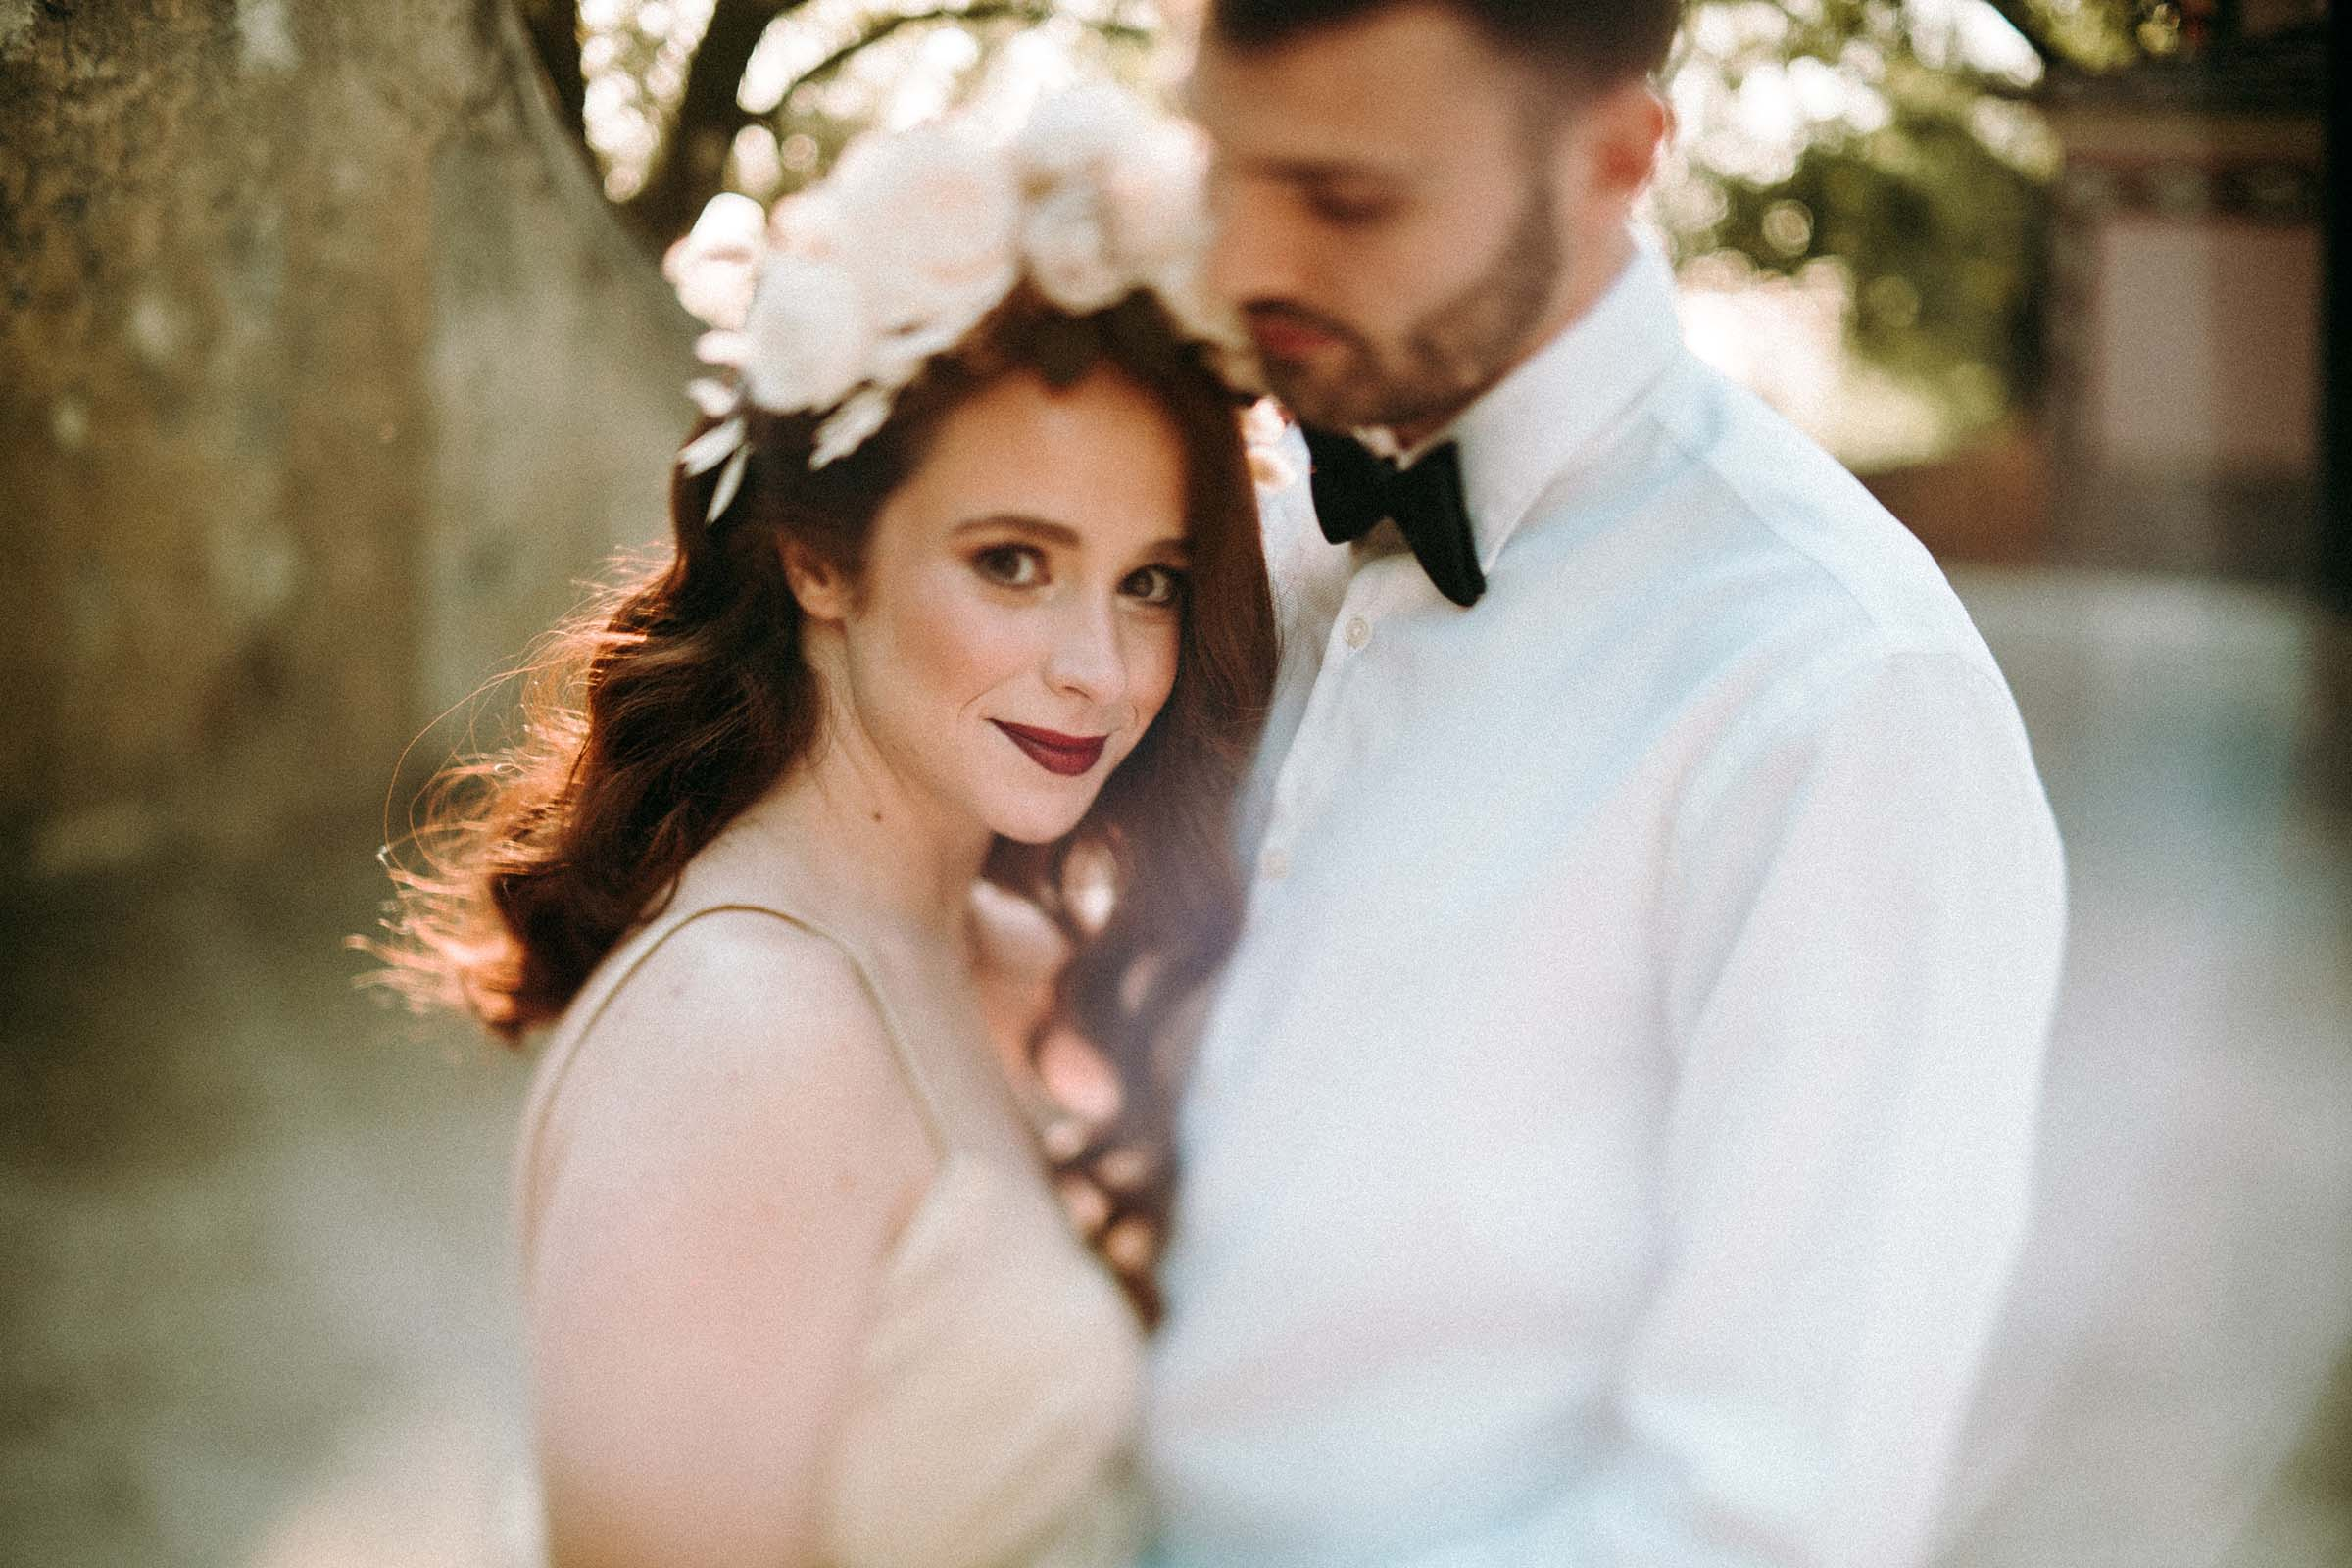 freelens bride looking straight to the camera with groom